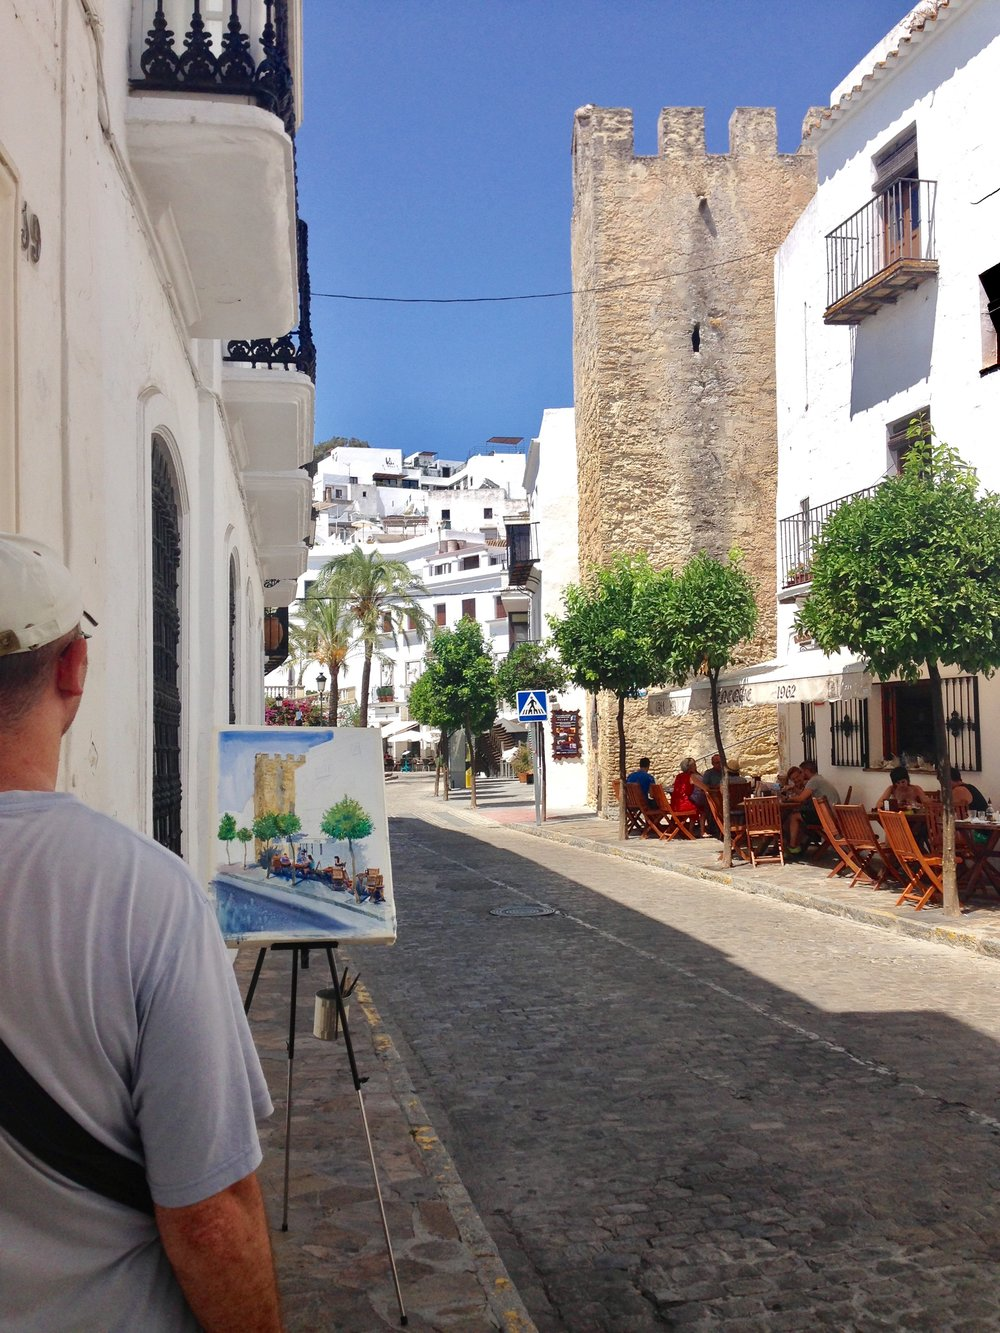 This artist spent the whole day painting his view. Unspoiled by tourism yet, Vejer is a quiet town, making it a perfect spot for artists.